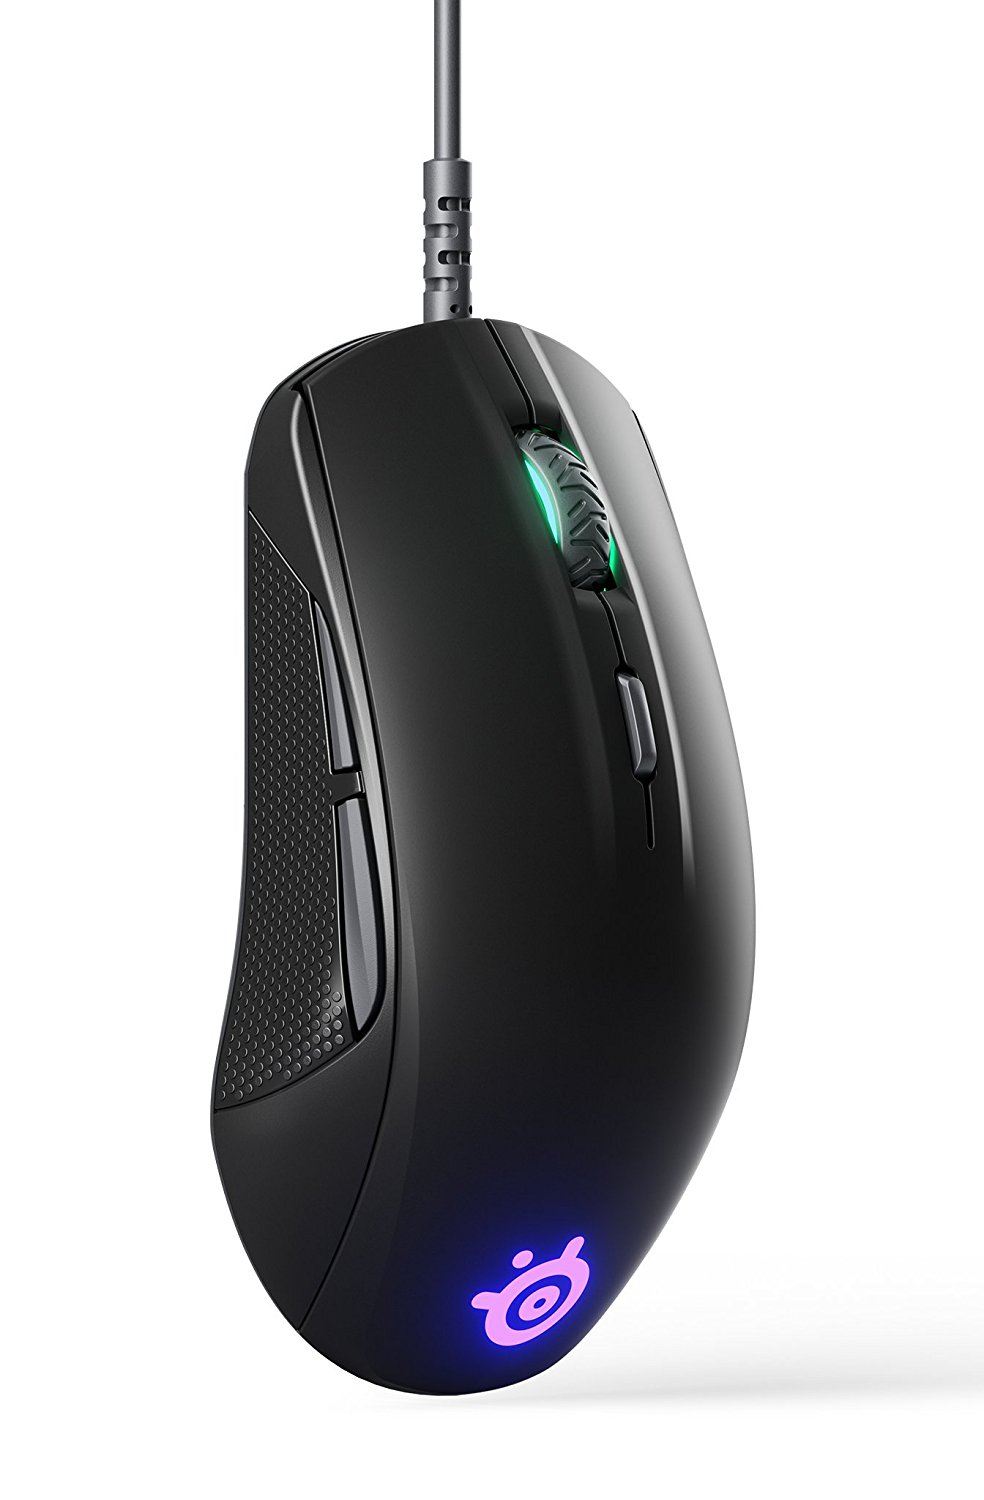 eca918c5798 Steelseries Rival 110 Black Mouse - Best Deal - South Africa